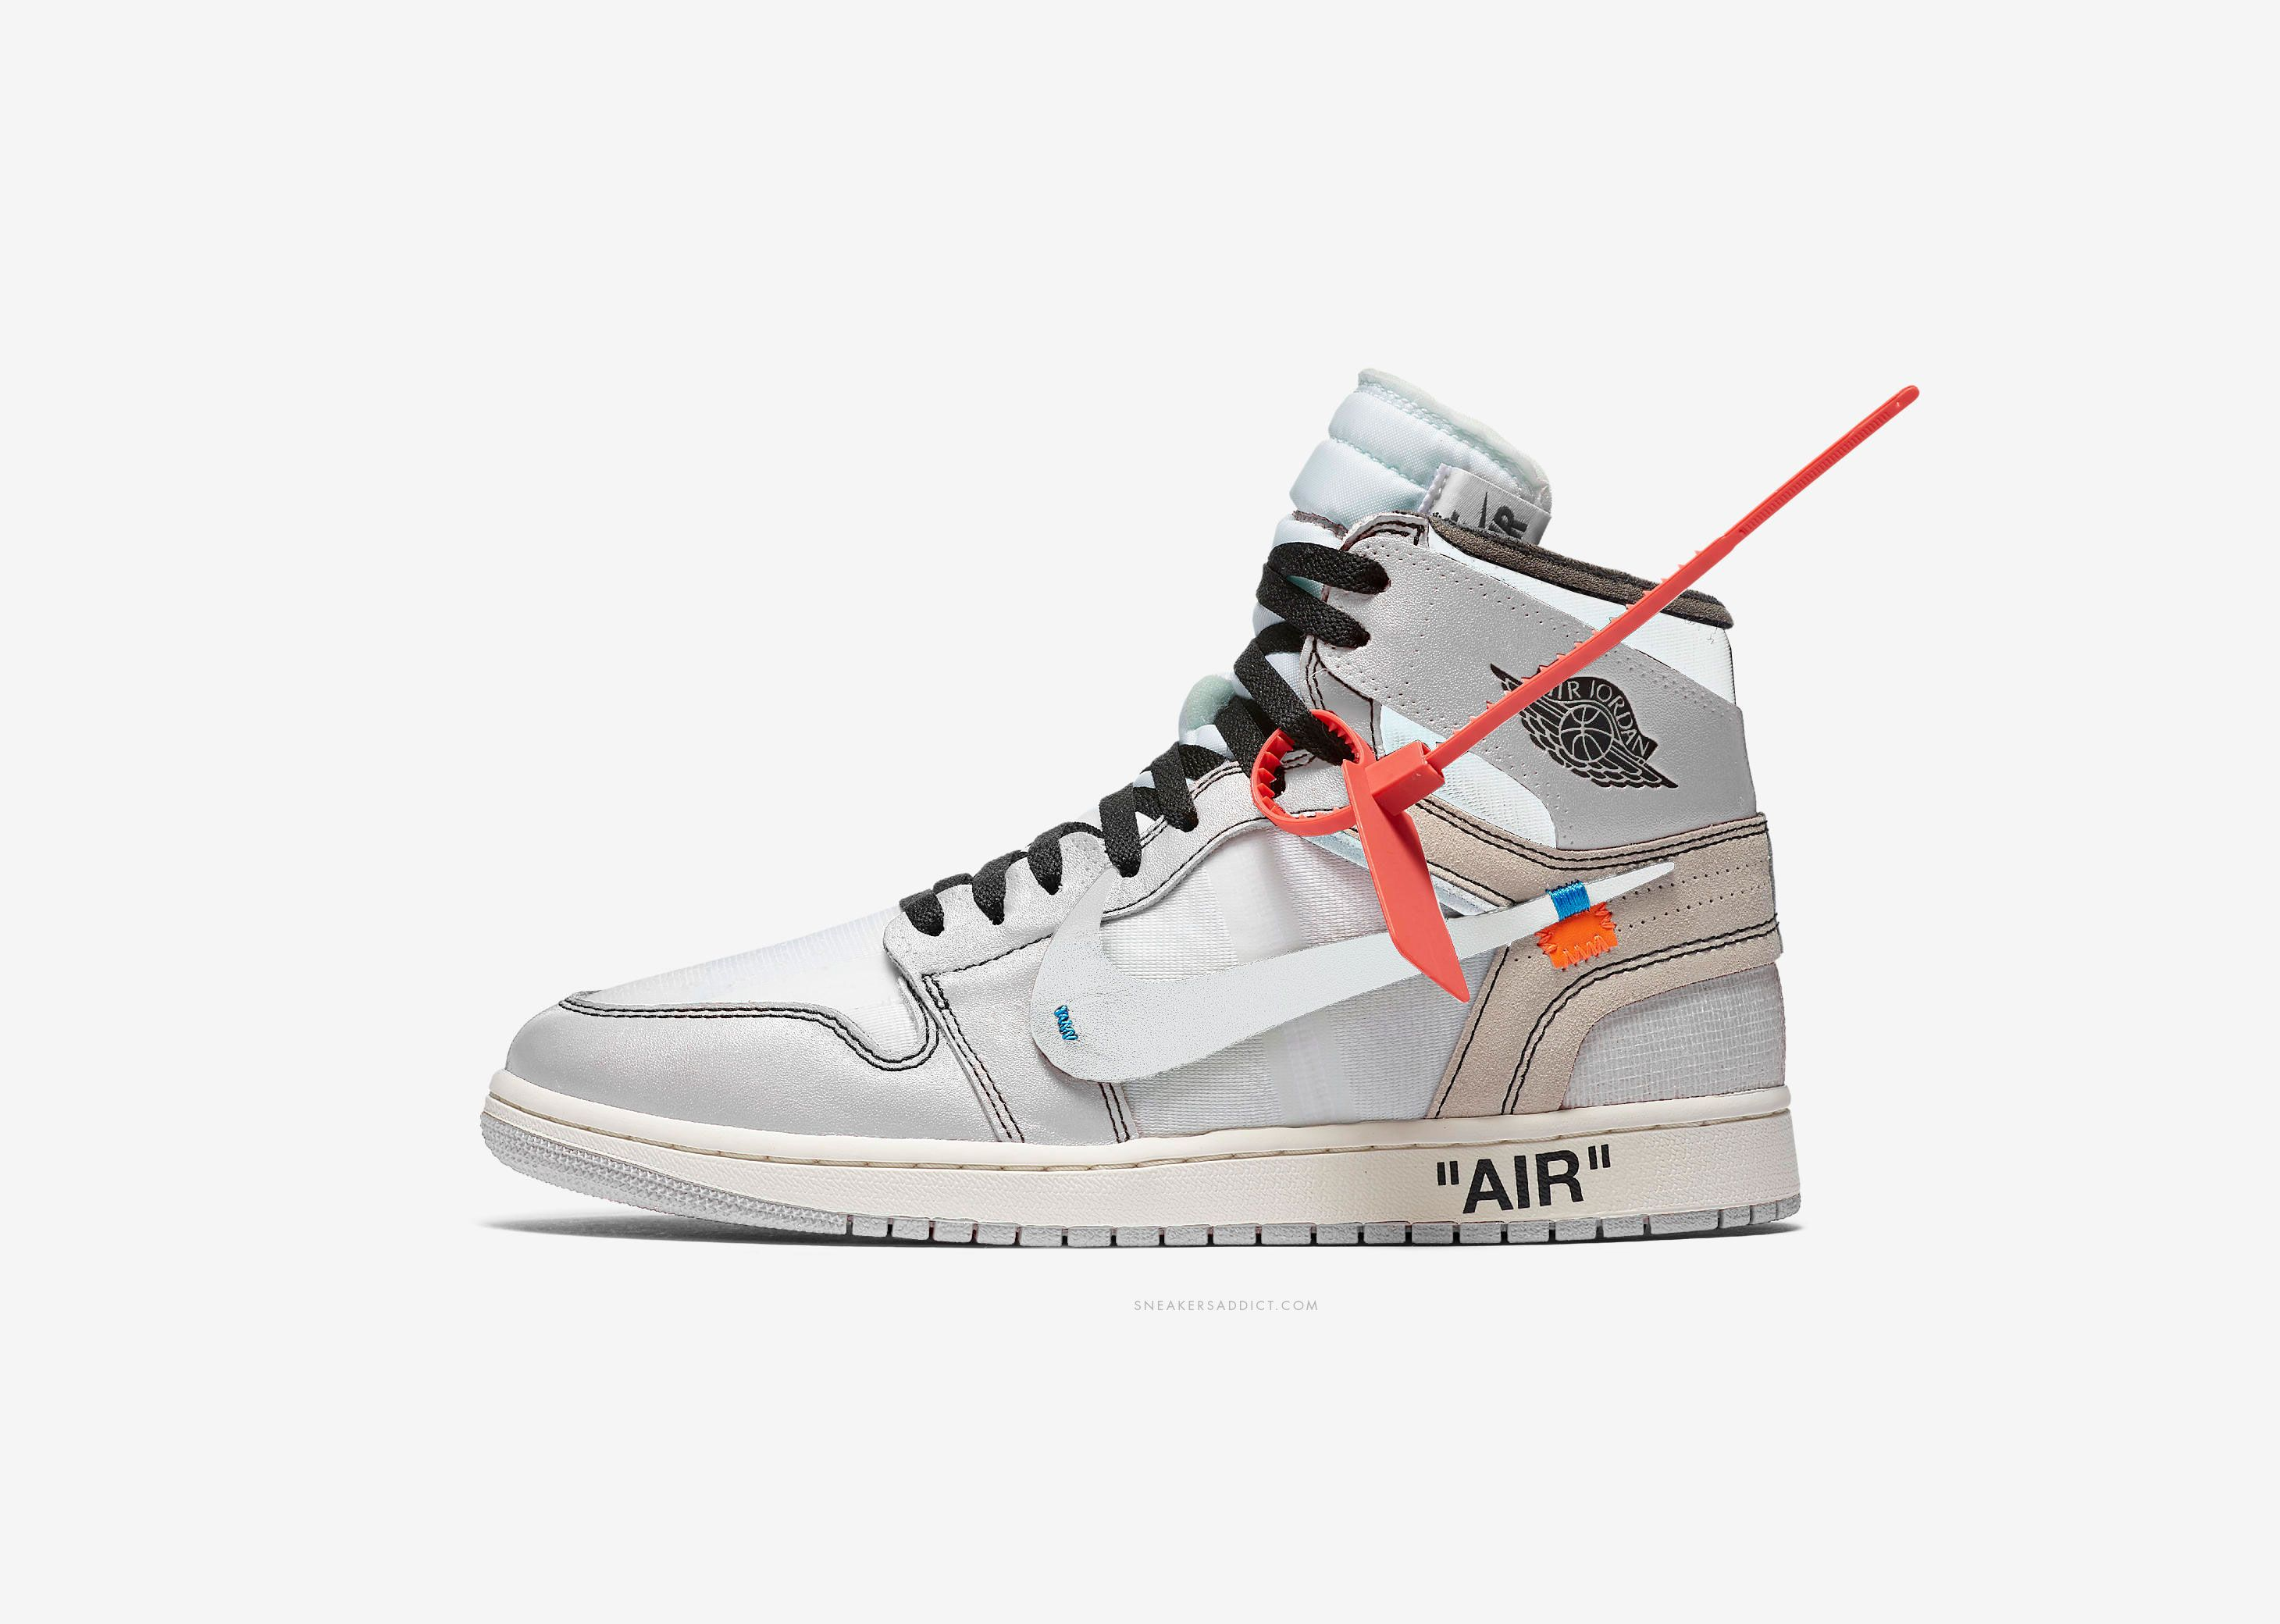 Off 2018 Releases White Calzado X Shoes Pinterest Nike TwqUT1